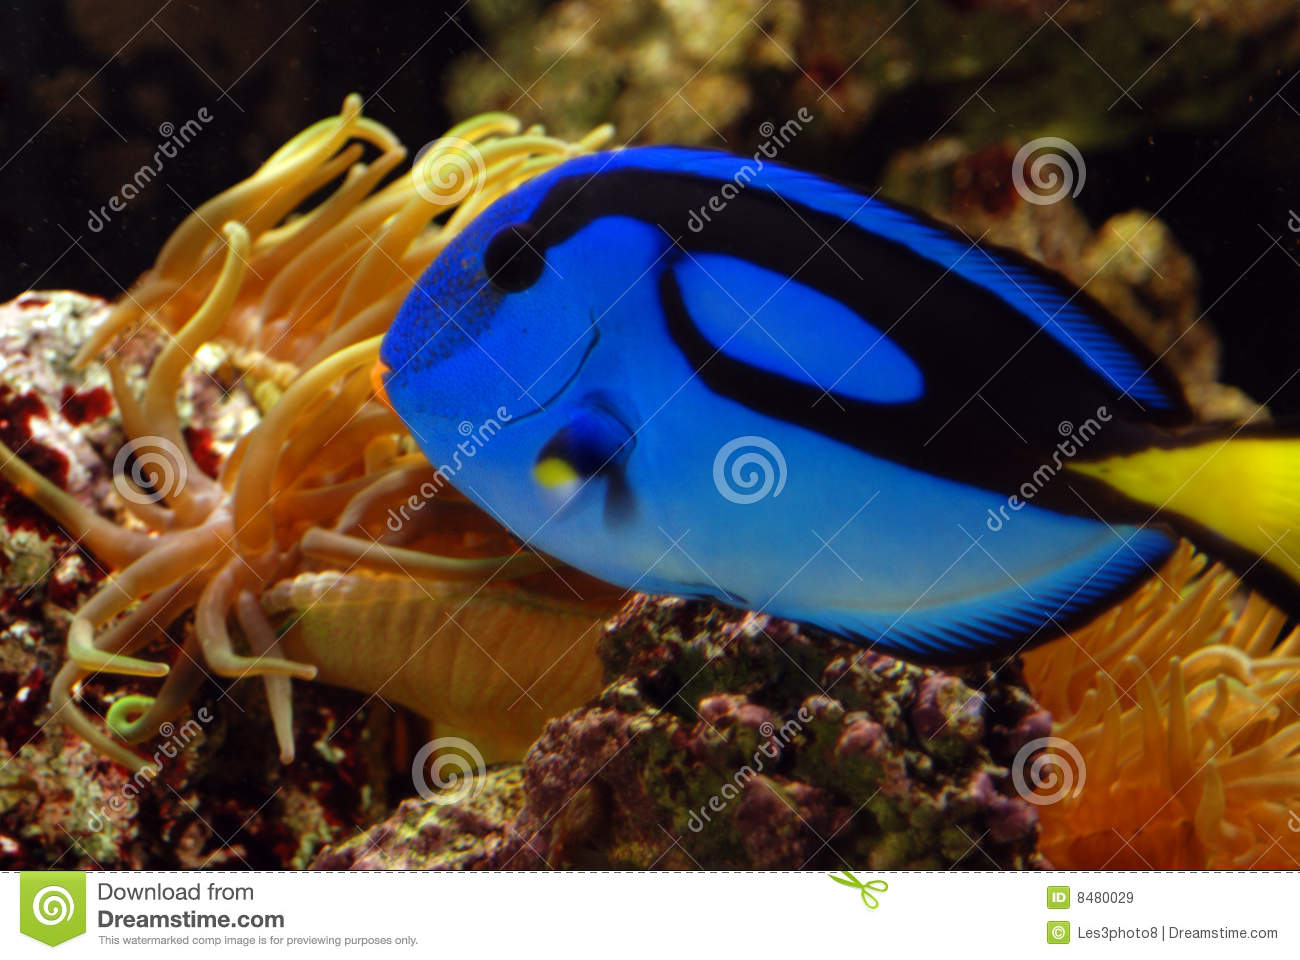 Blue angelfish in gold anemone